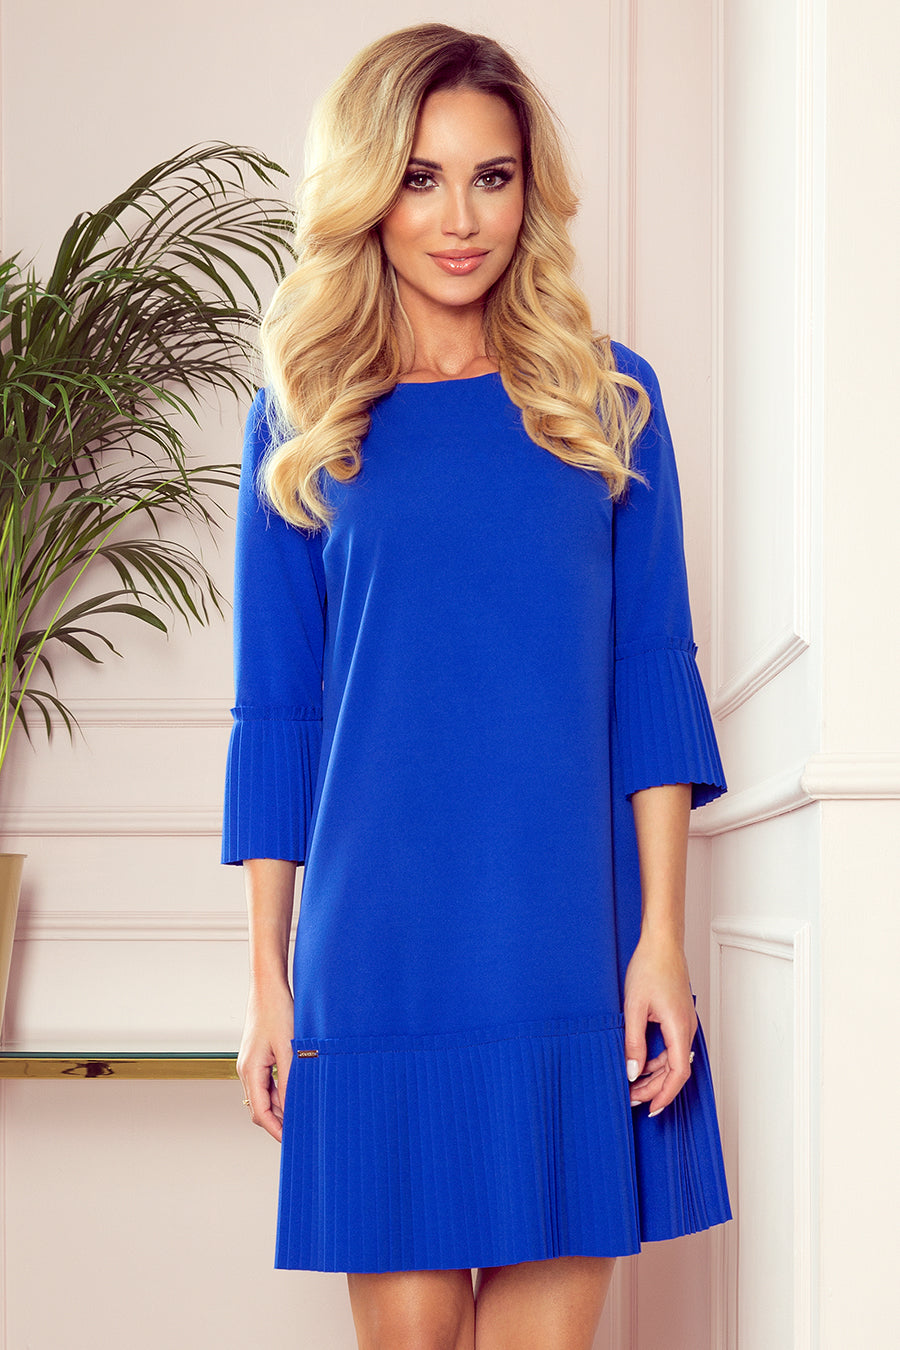 Numoco 228-8 LUCY - pleated comfortable dress - Royal Blue